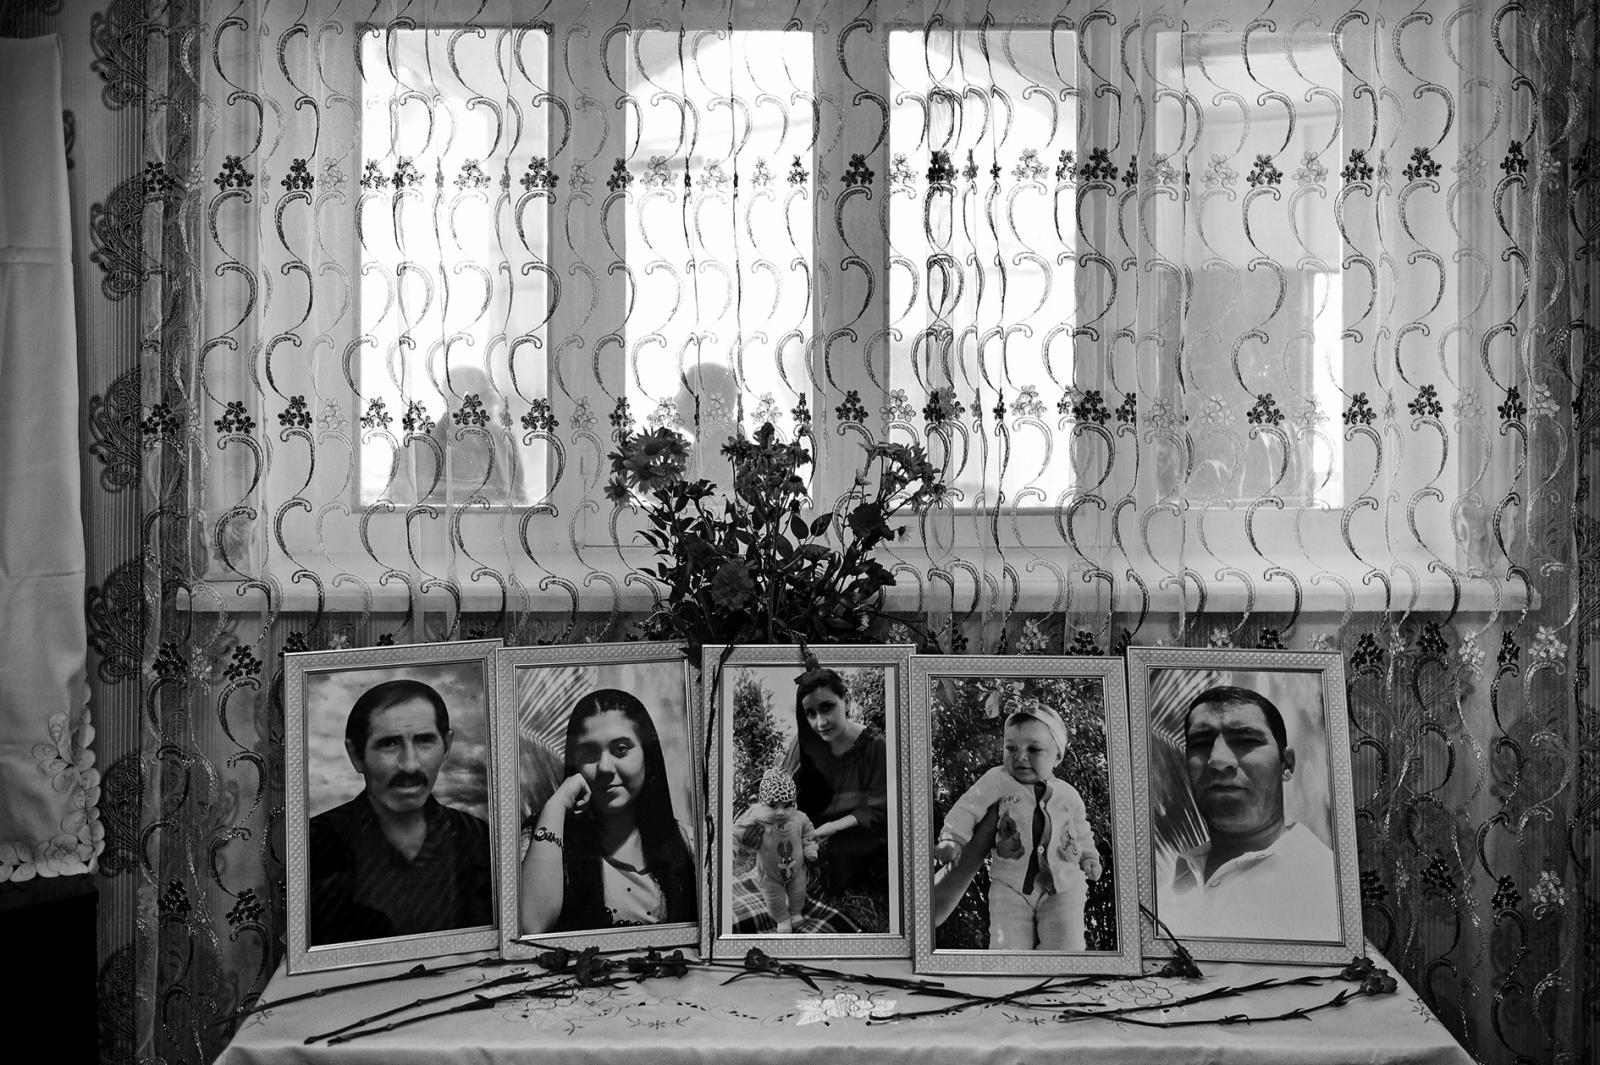 GANJA, AZERBAIJAN, OCTOBER 17 -13 Azerbaijani citizen lost their lives in the missile attack carried out by the Armenian army on the city of Ganja, 60 kilometers from the front line. A family photo were placed on a table in the condolence house. Their dead bodies were removed from the wreckage of their house where an Armenian army missile fell. (from left to right: ather Suluddin Eskerov, grandson Nigar Eskerova, daughter-in-law Sevil Eskerova, 10-month-old grandson Narin Eskerova, son Bahtiyar Eskerov)